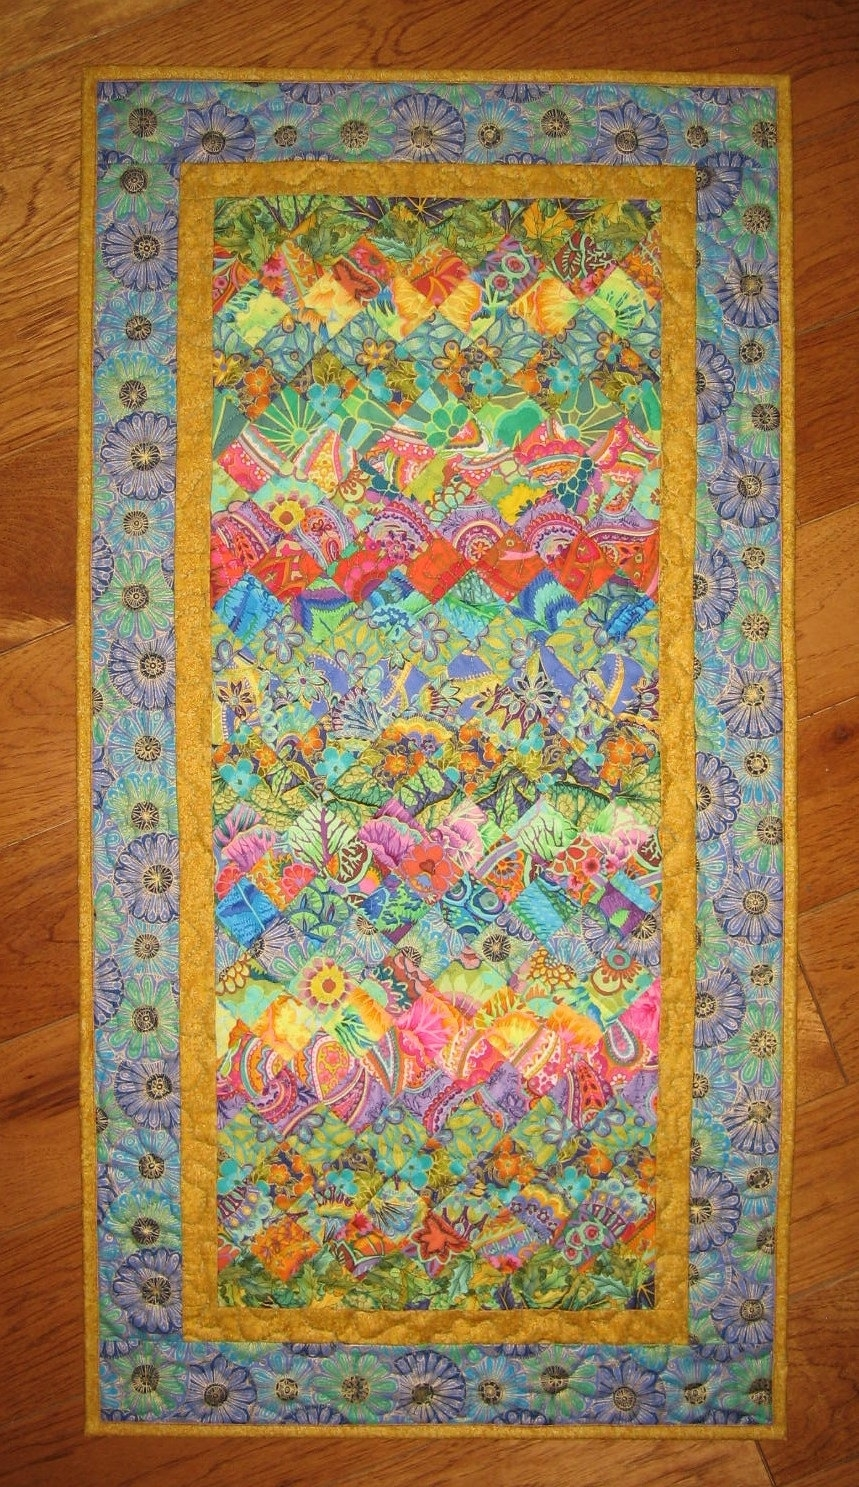 Art Deco Art Quilt, Paisley Turquoise, Orange, Yellow And Purple Within Most Popular Quilt Fabric Wall Art (View 3 of 15)